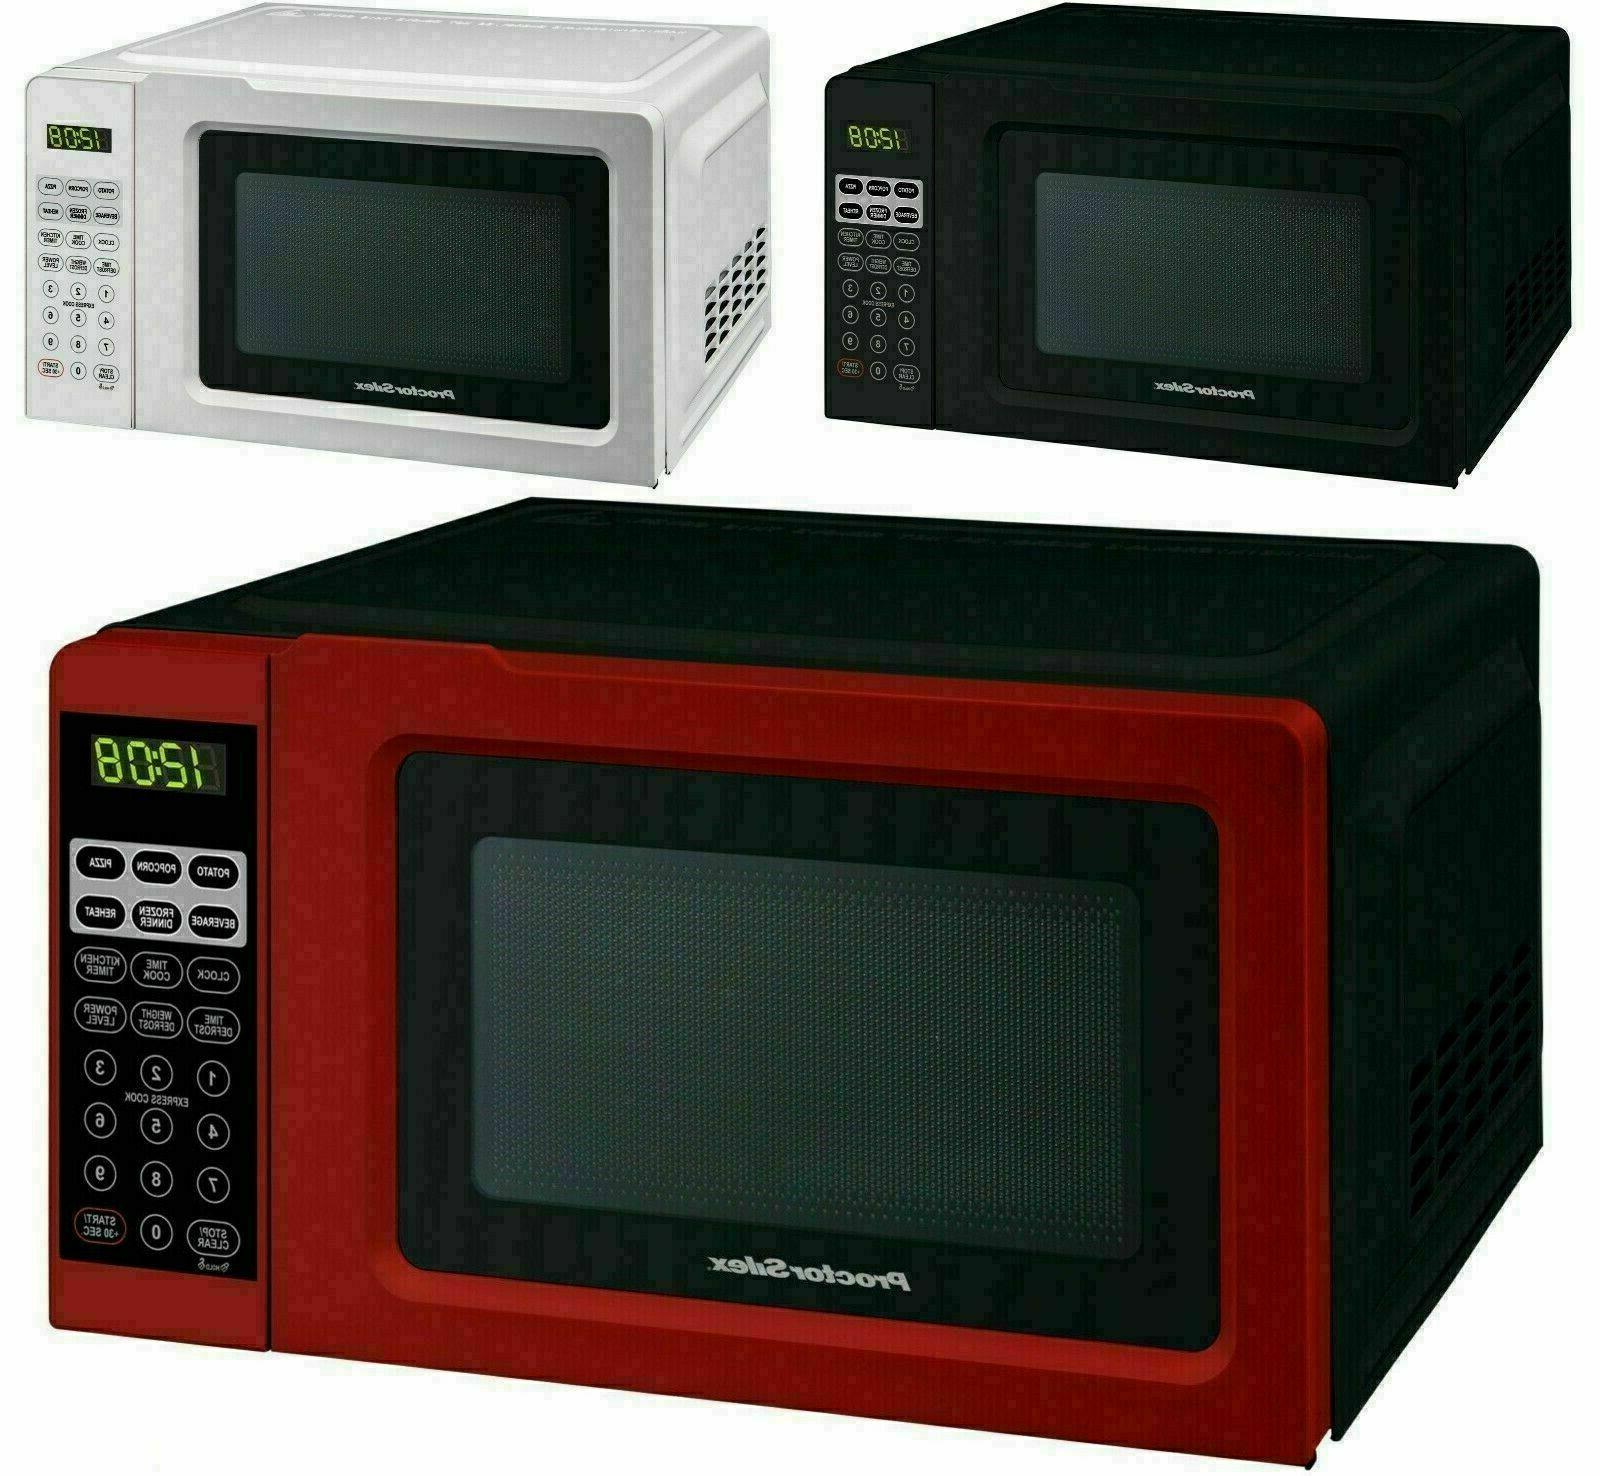 red 0 7 cu ft microwave oven